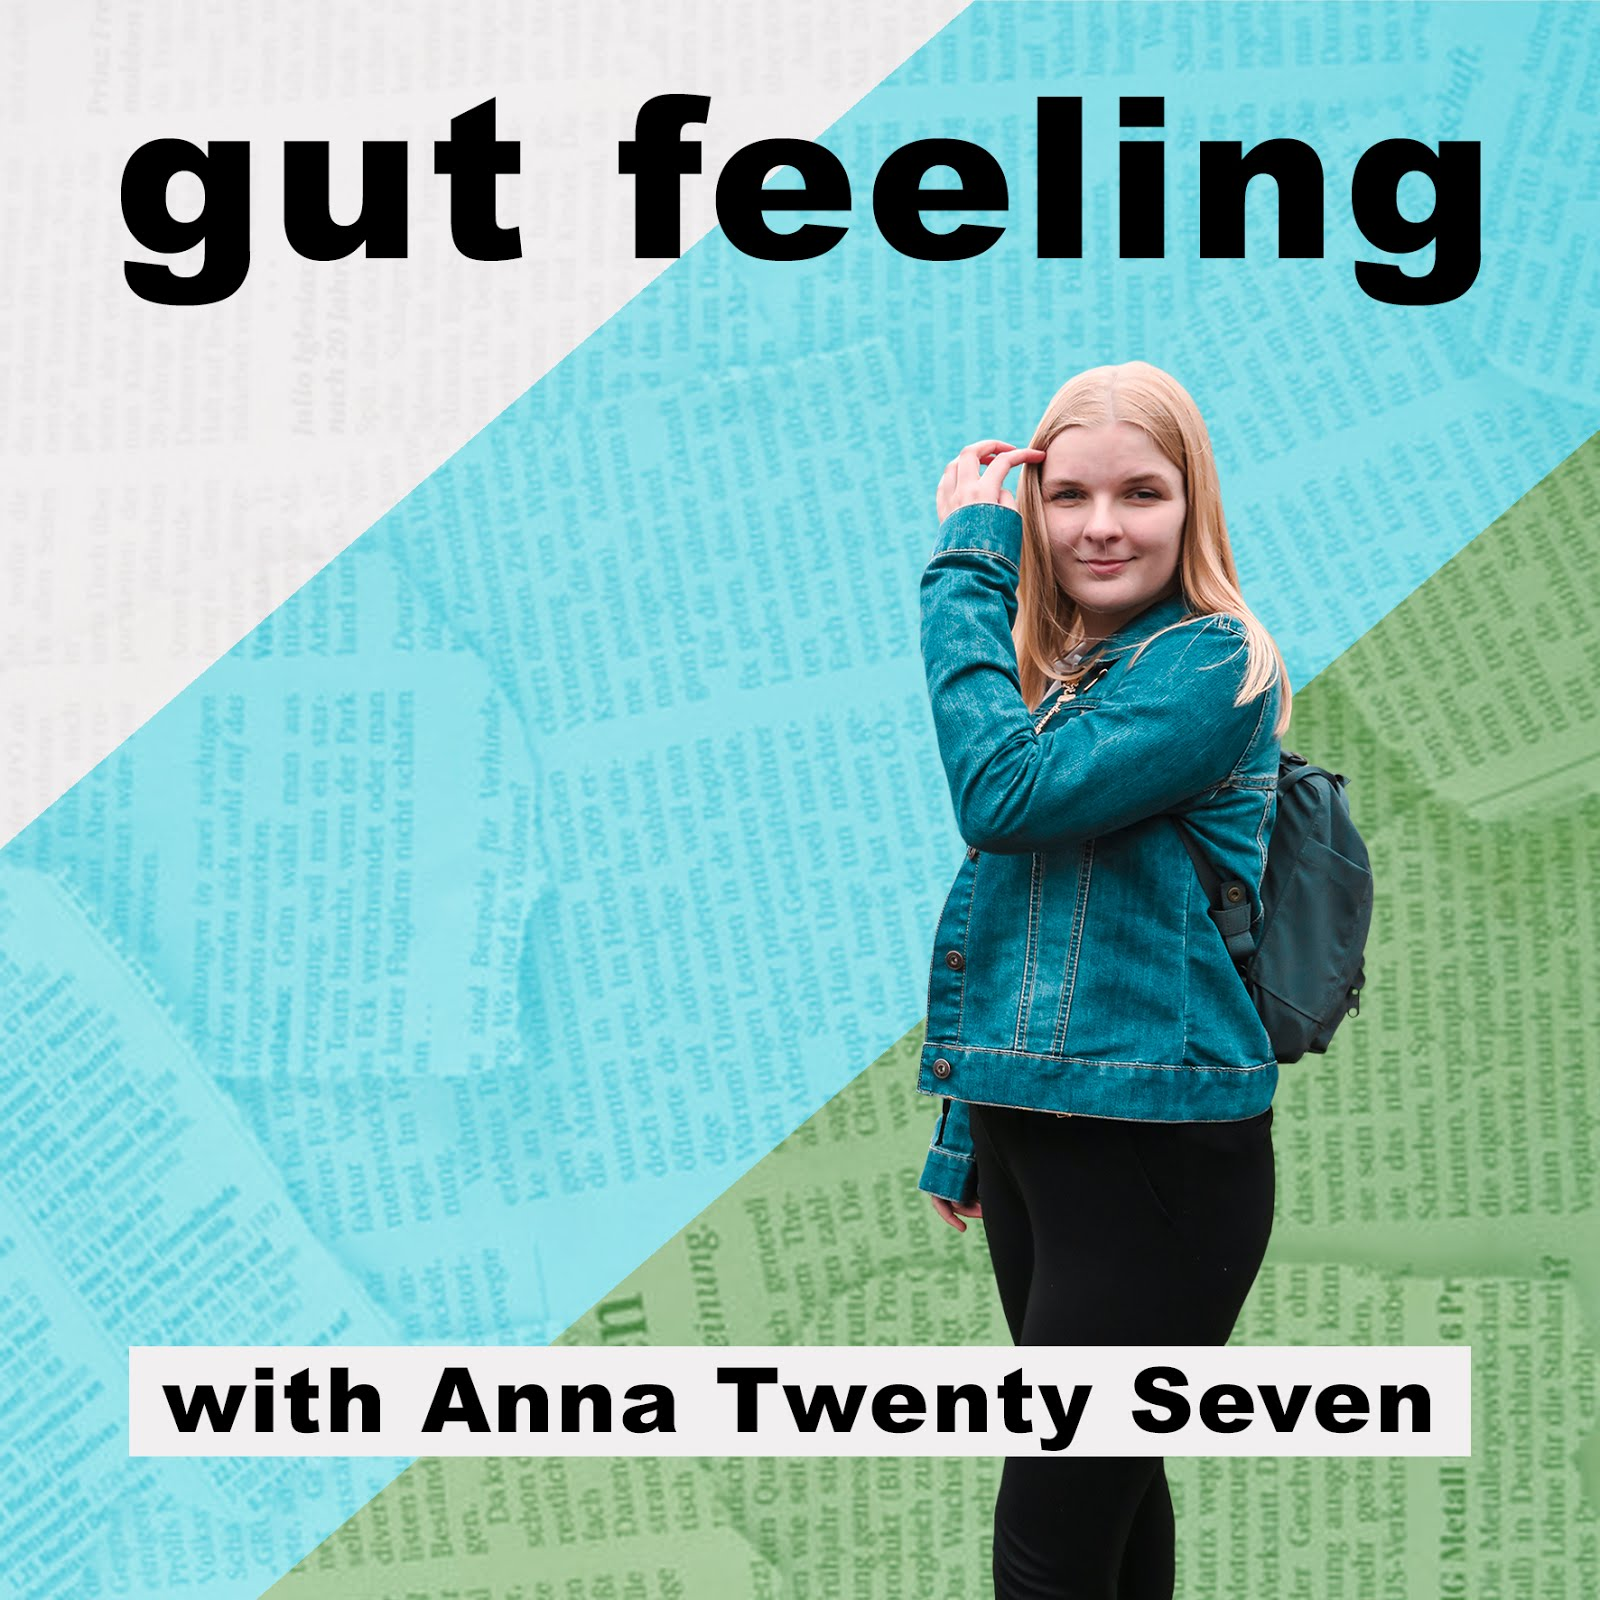 GUT FEELING WITH ANNA PODCAST ABOUT FOLLOWING YOUR GUT, OVARIAN CYSTS, POSITIVITY AND LIFESTYLE. MORE ON WWW.ANNATWENTYSEVEN.COM